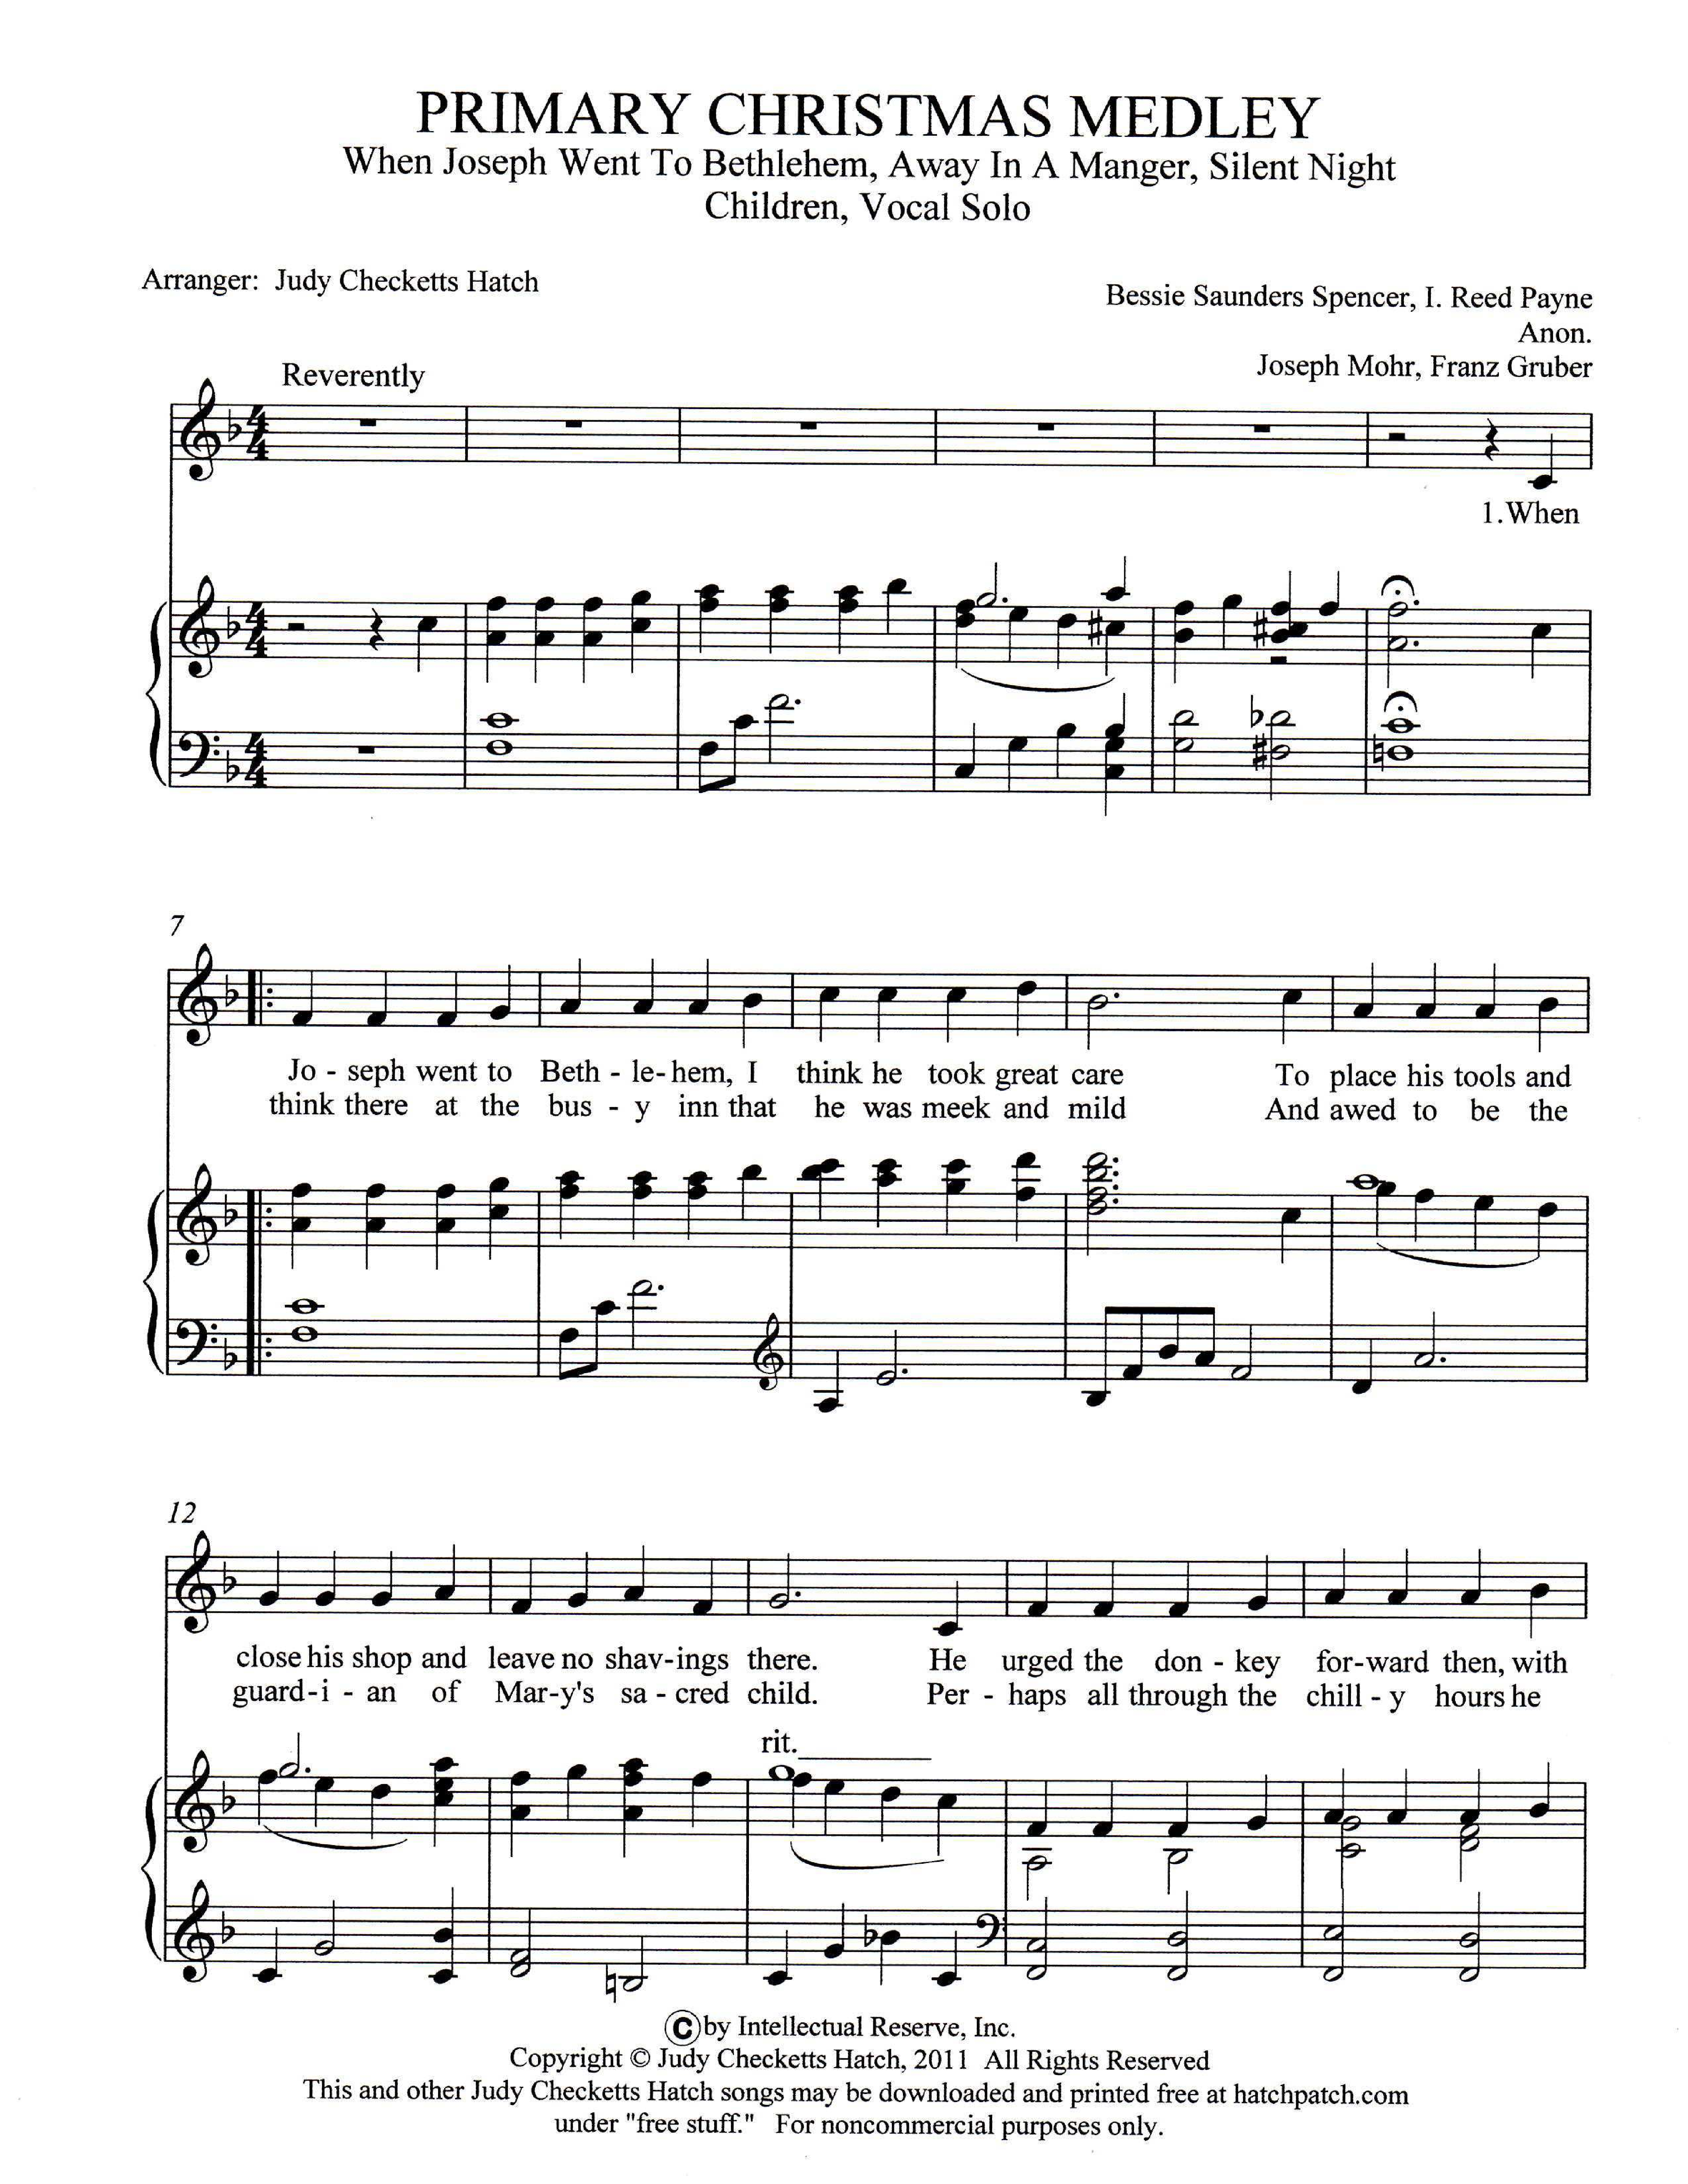 sheet_music_picture - Song This Christmas